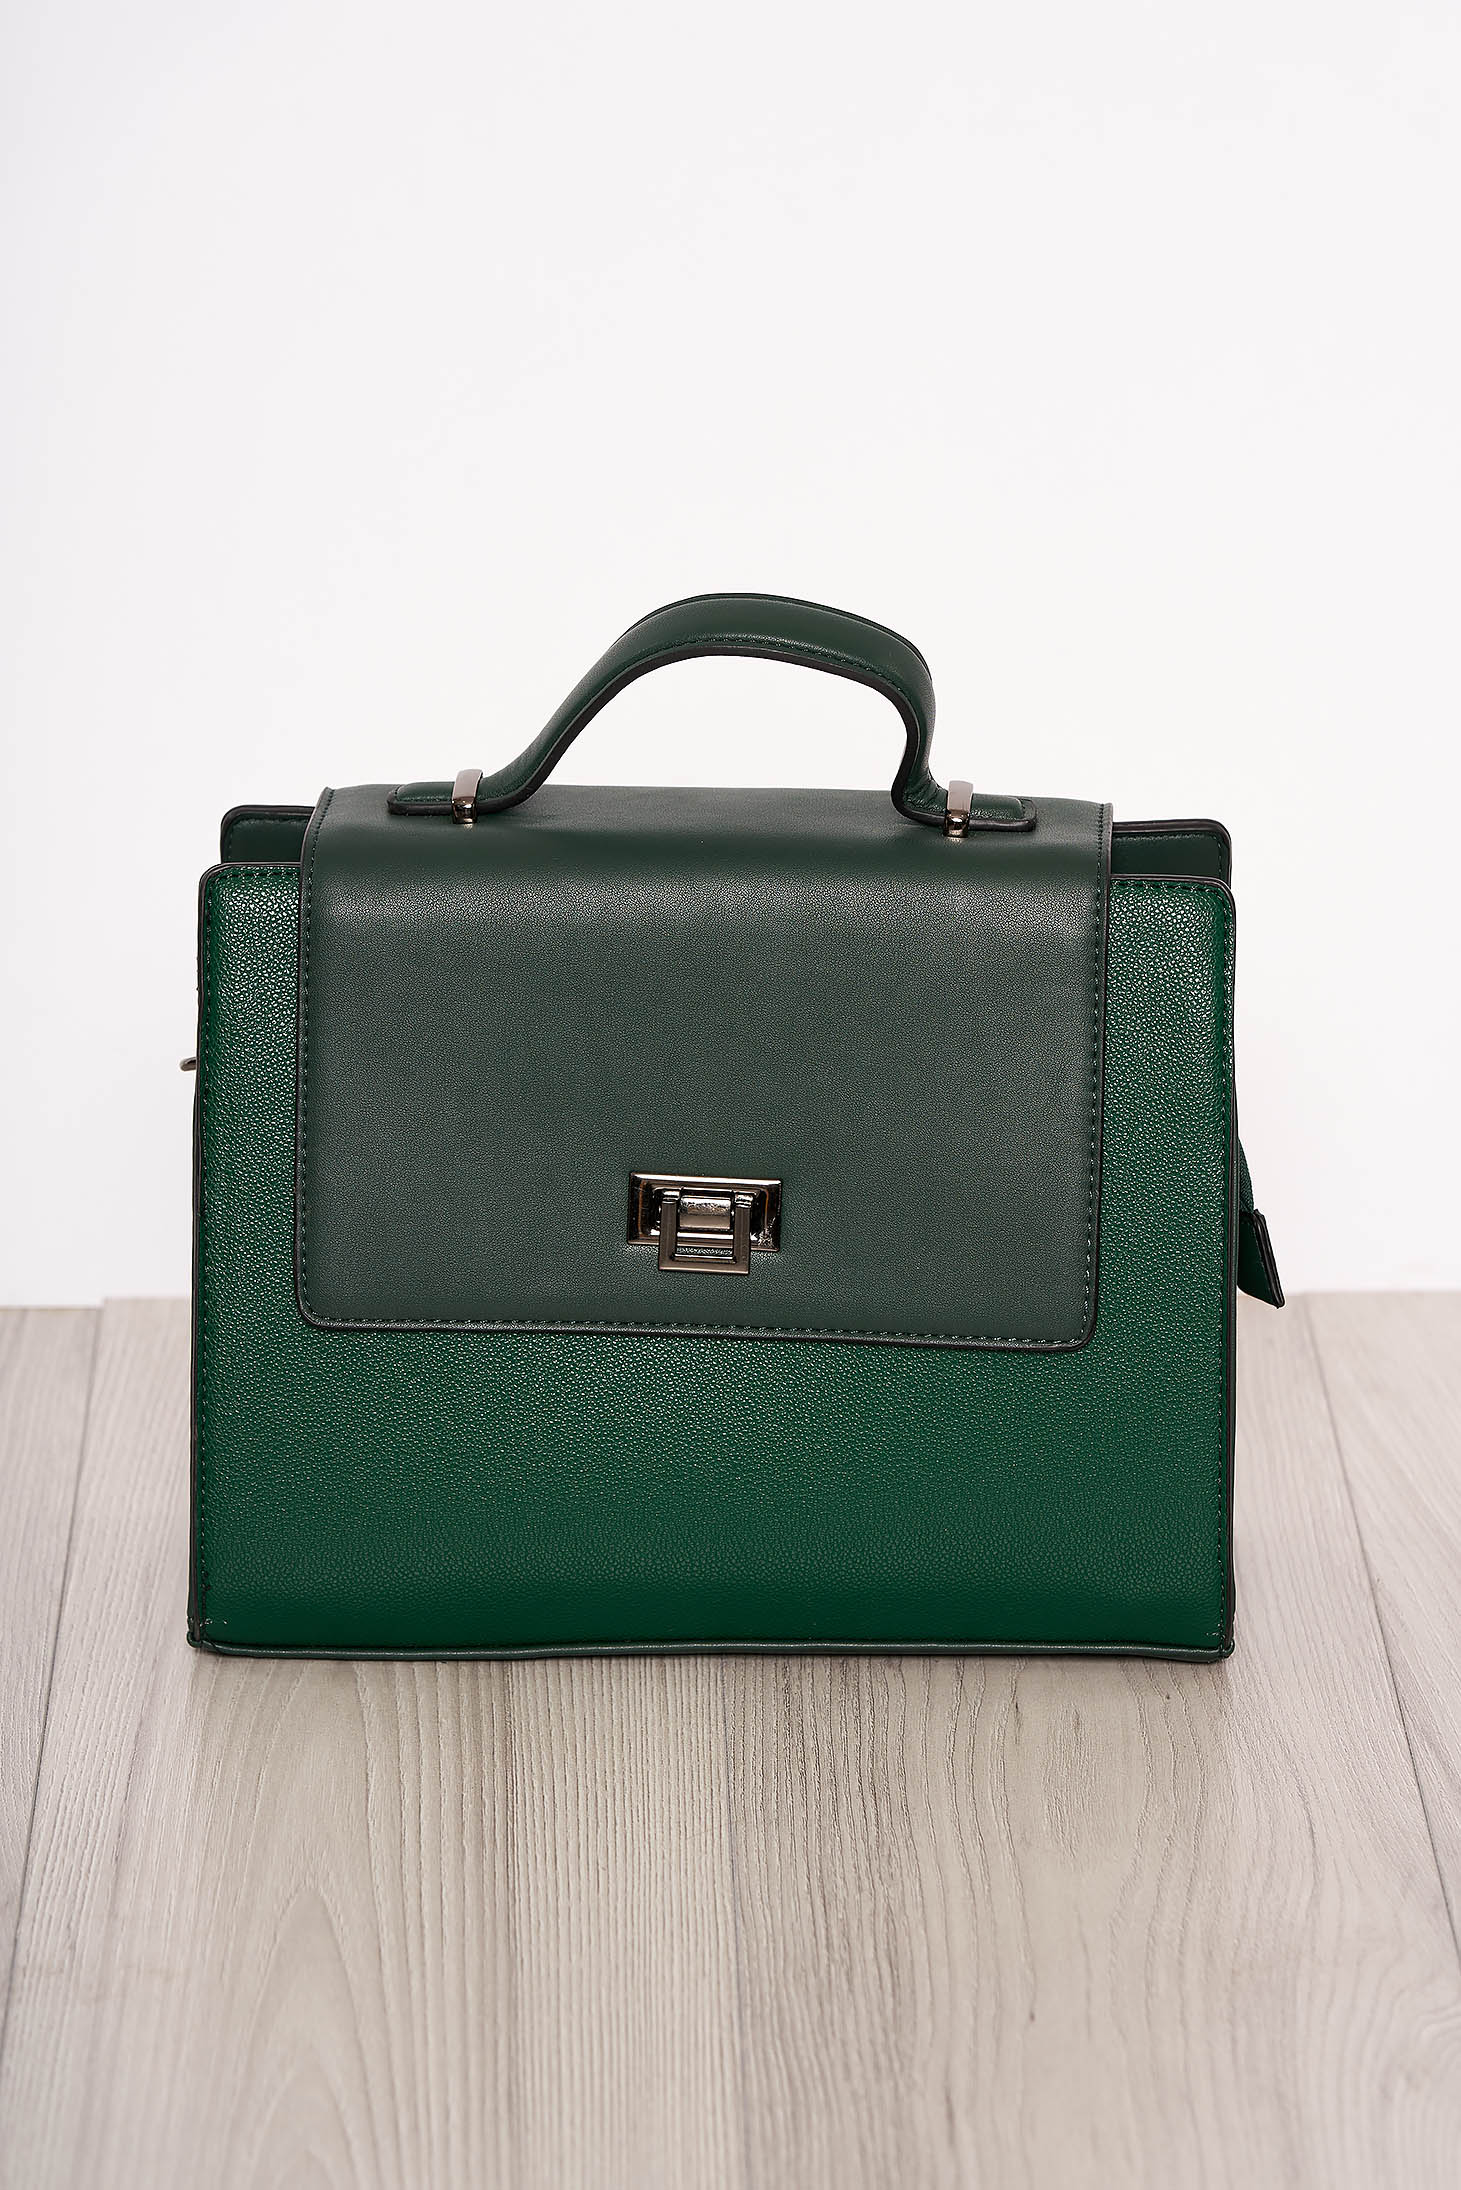 Green bag elegant faux leather short handle and long chain handle